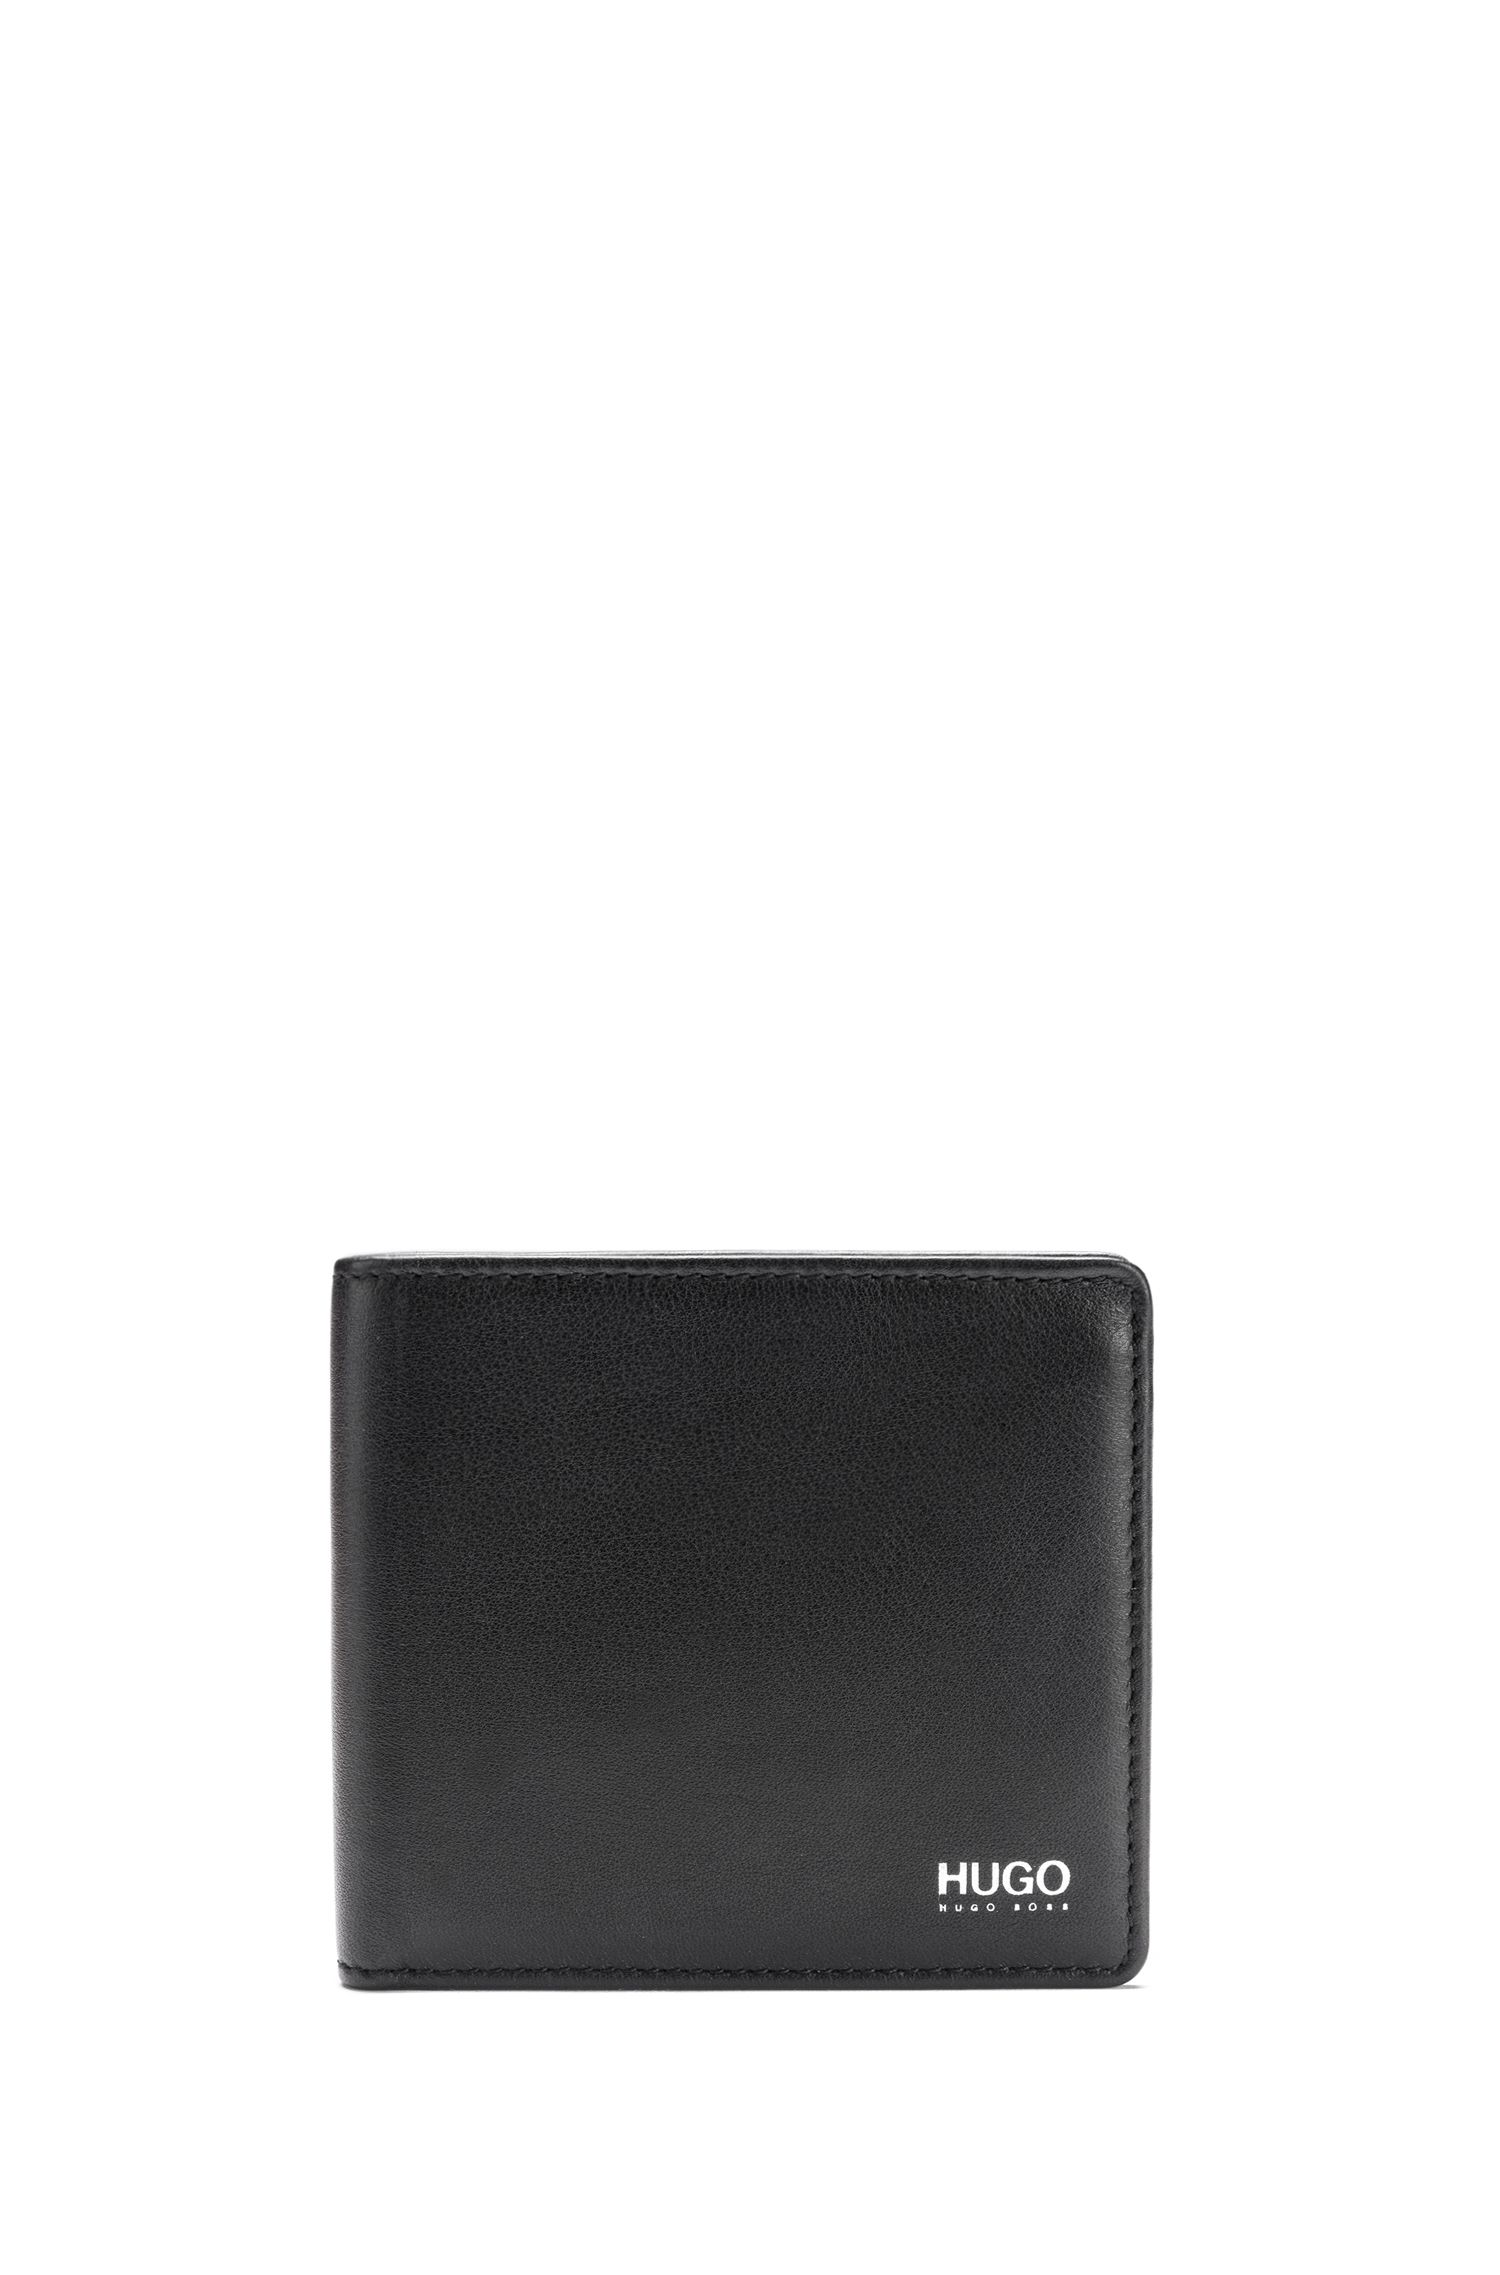 Leather wallet and card holder gift set with contrast logo, Black